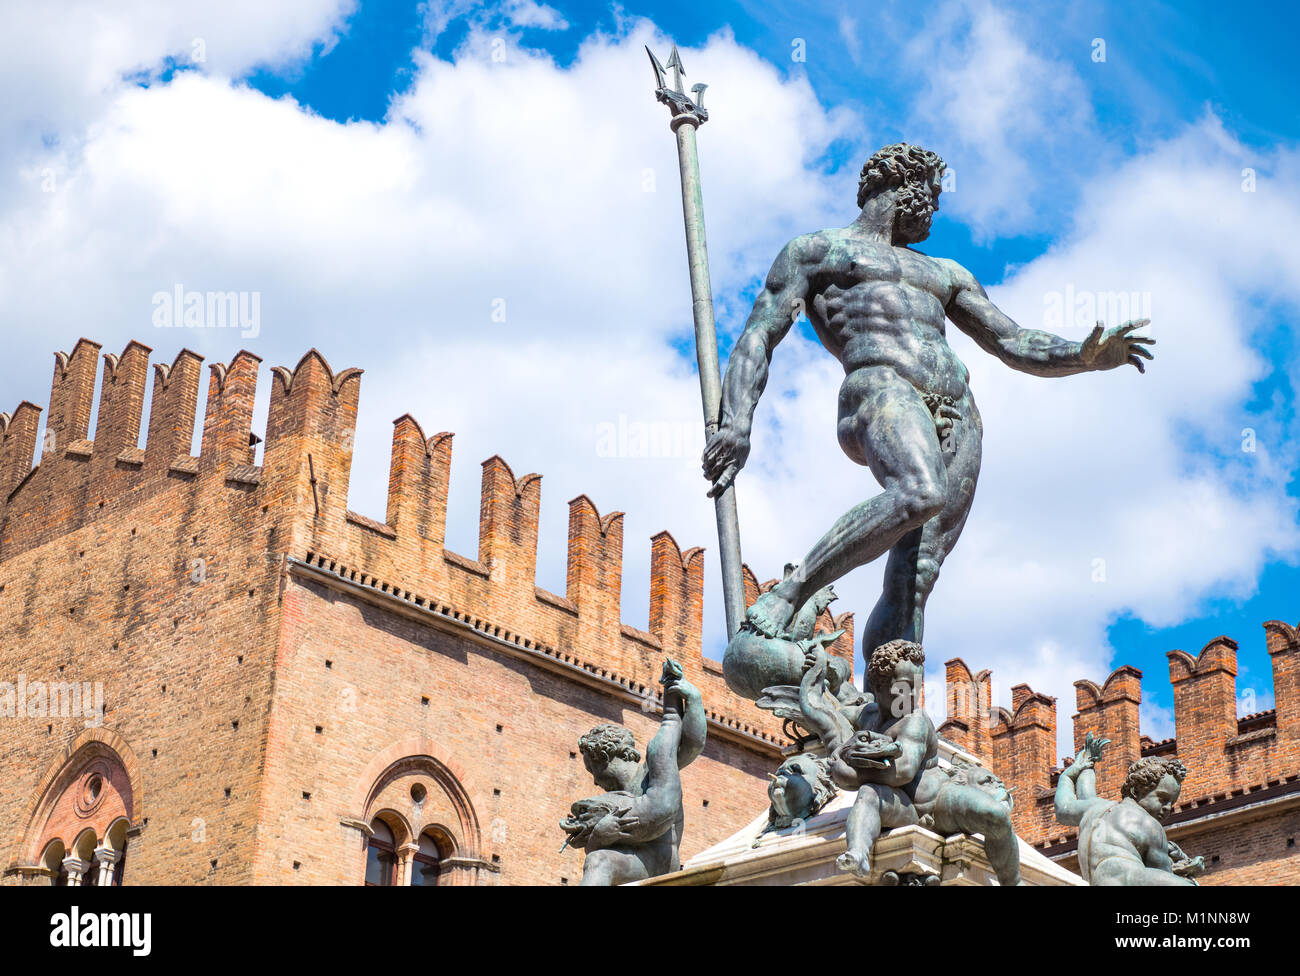 Italy, Bologna, Del Nettuno square, the Neptune statue and the Re Enzo palace in the background - Stock Image